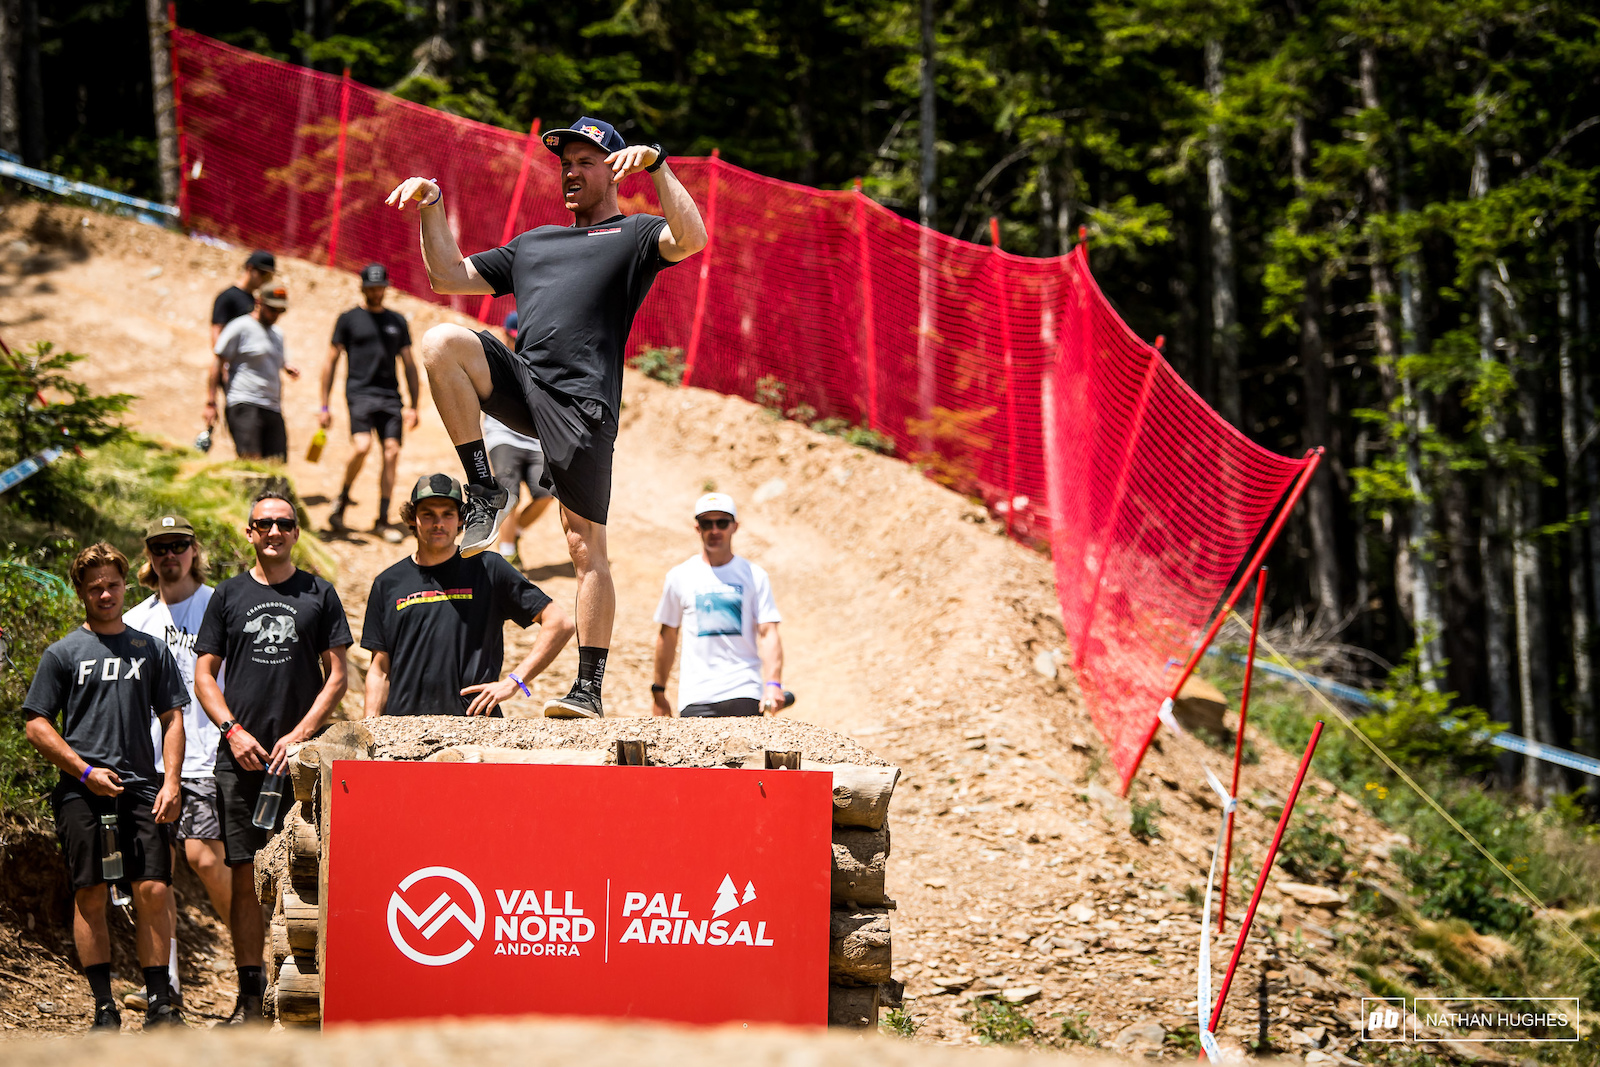 Aaron Gwin back to being a full time kung-fu master now that the ankle s all healed up.